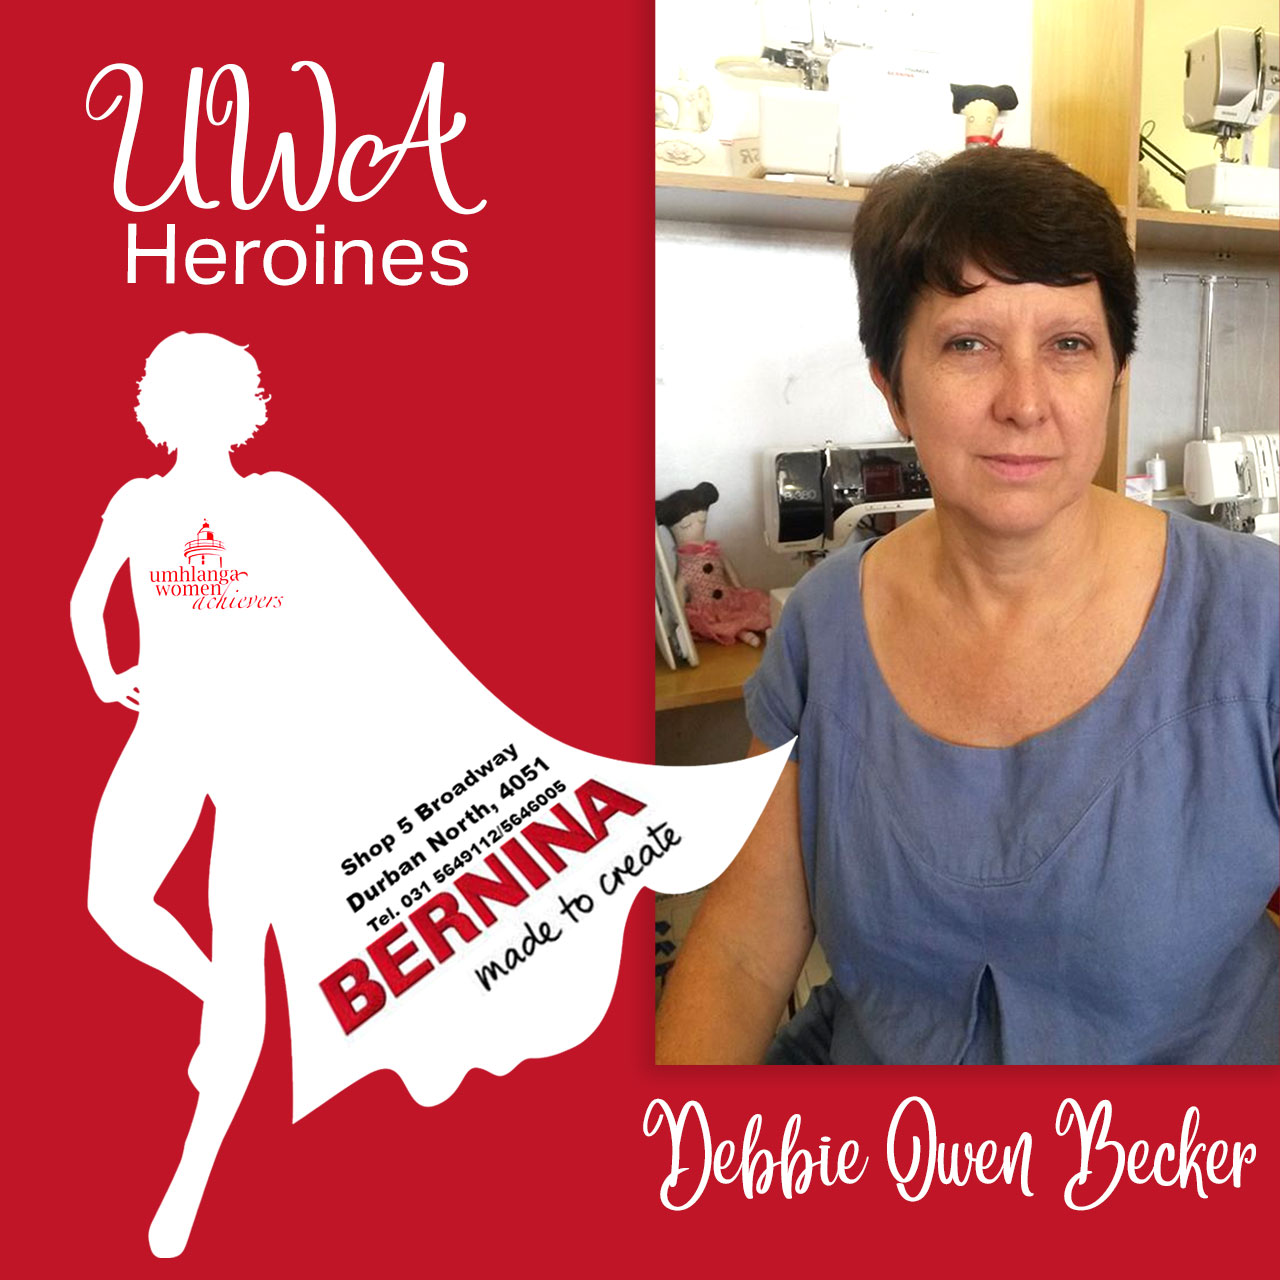 an exceptional UWA Heroine, well done Debbie Becker from Bernina.